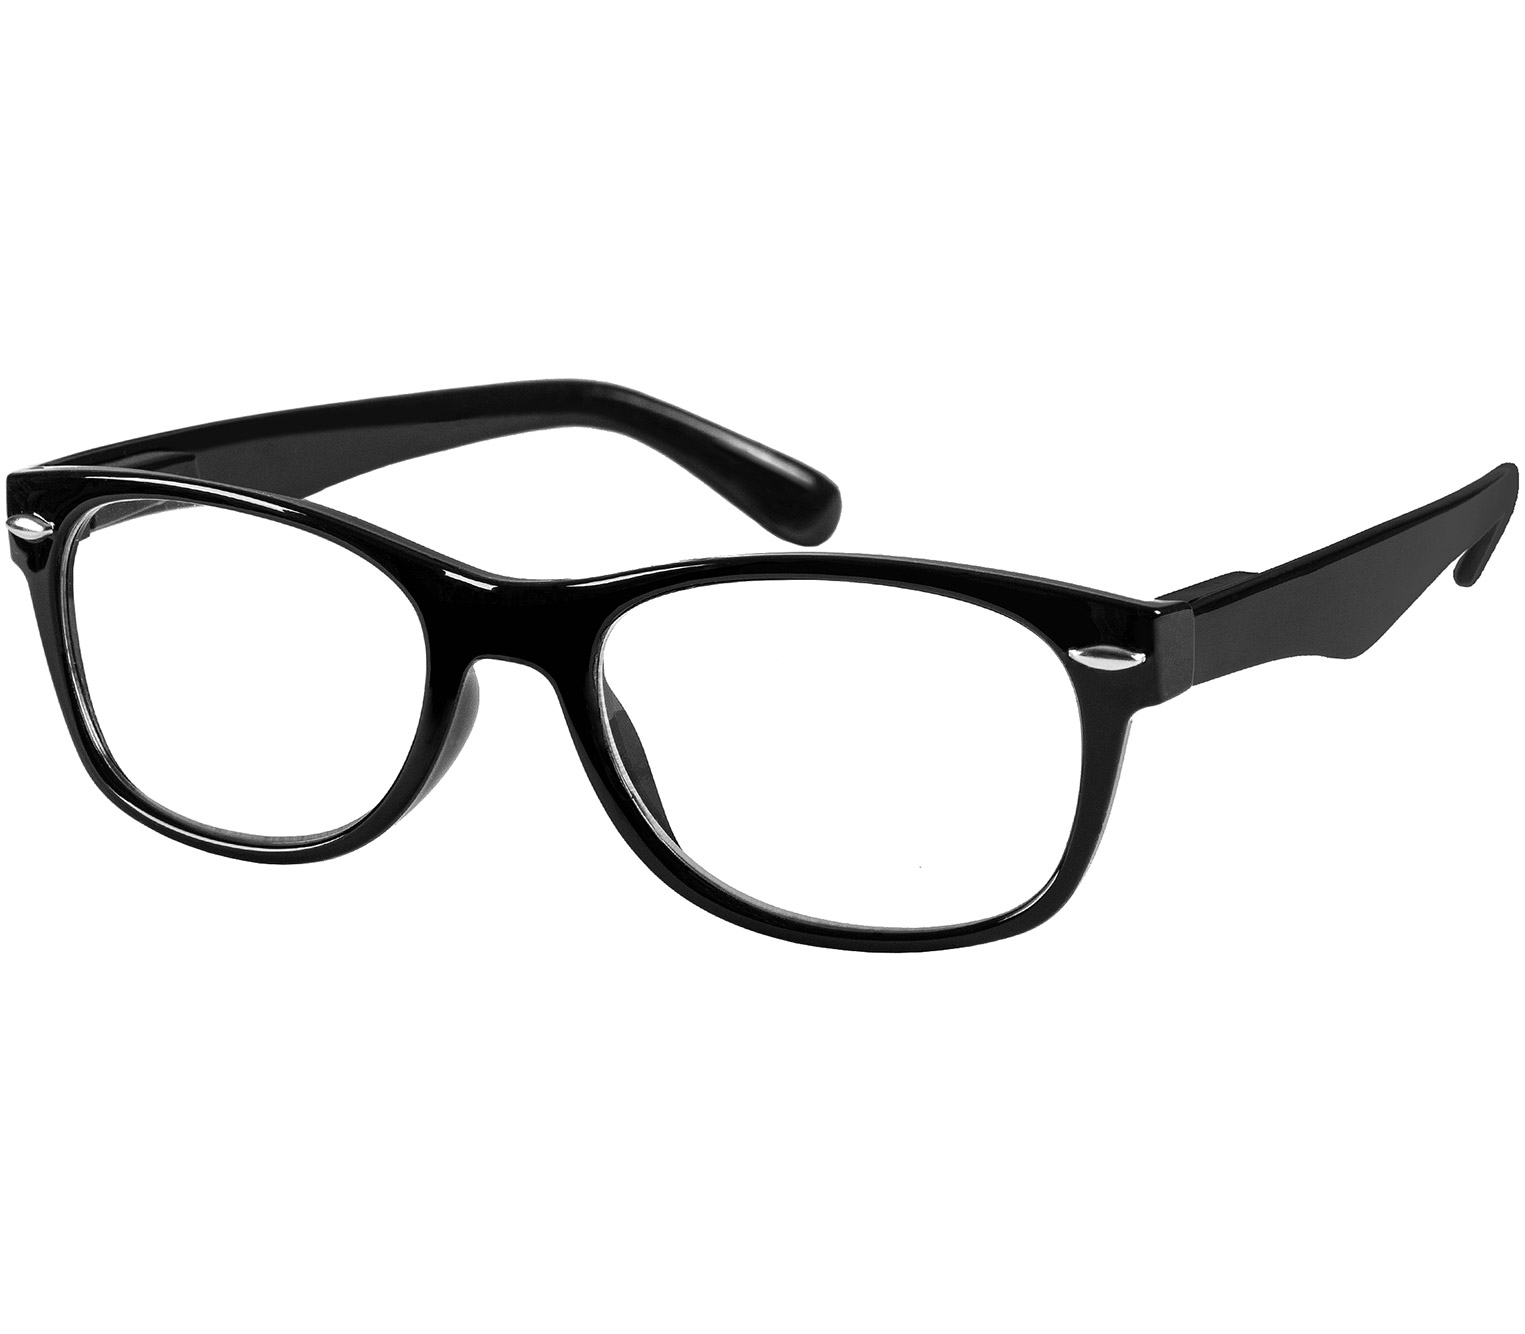 Main Image (Angle) - Harper (Black) Reading Glasses